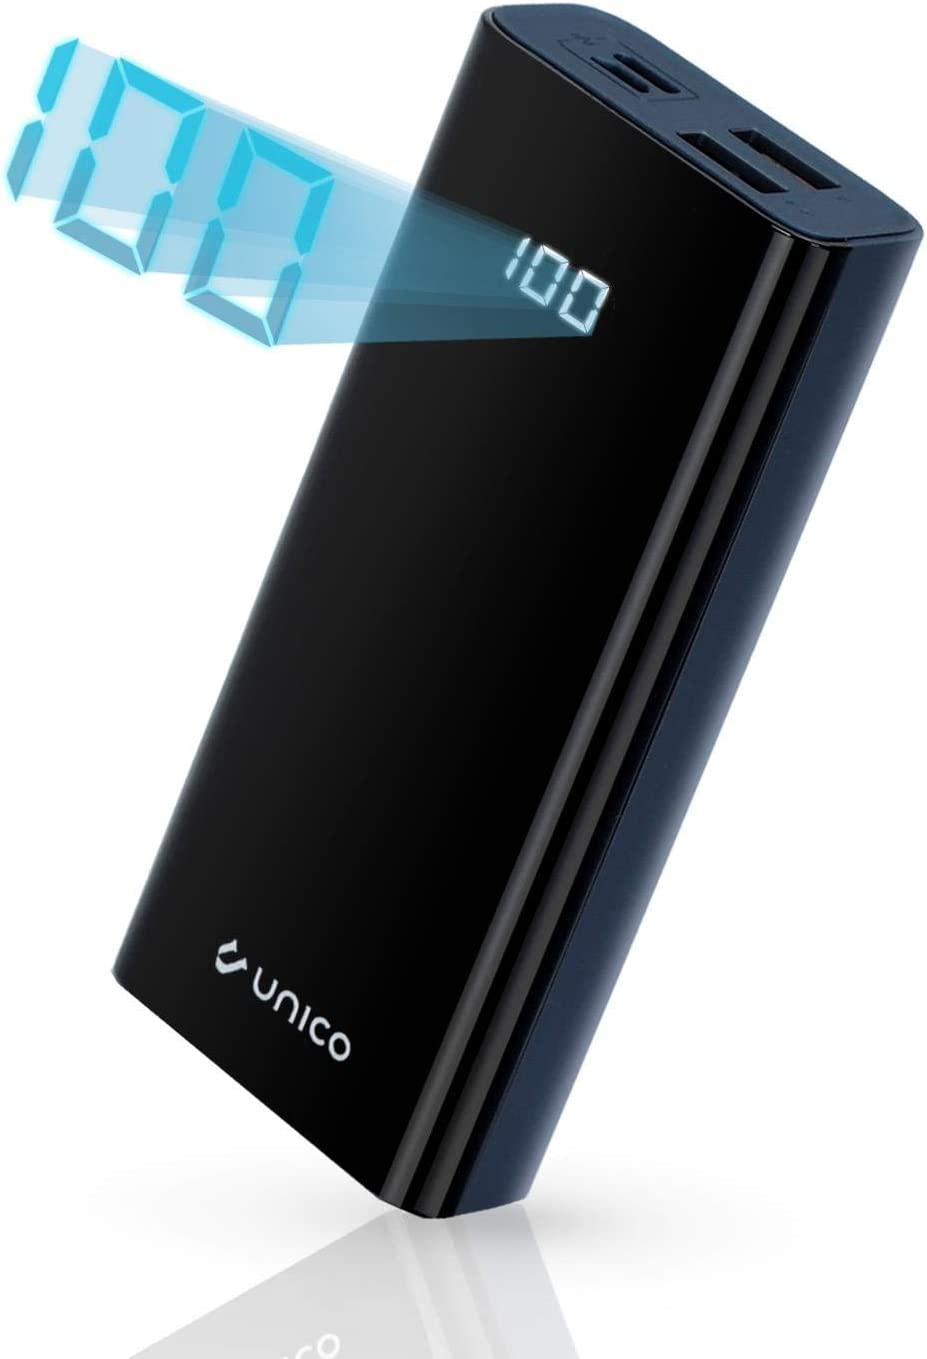 Unico - Power Bank, Batería Externa 10000 mAh, Pantalla Digital ...